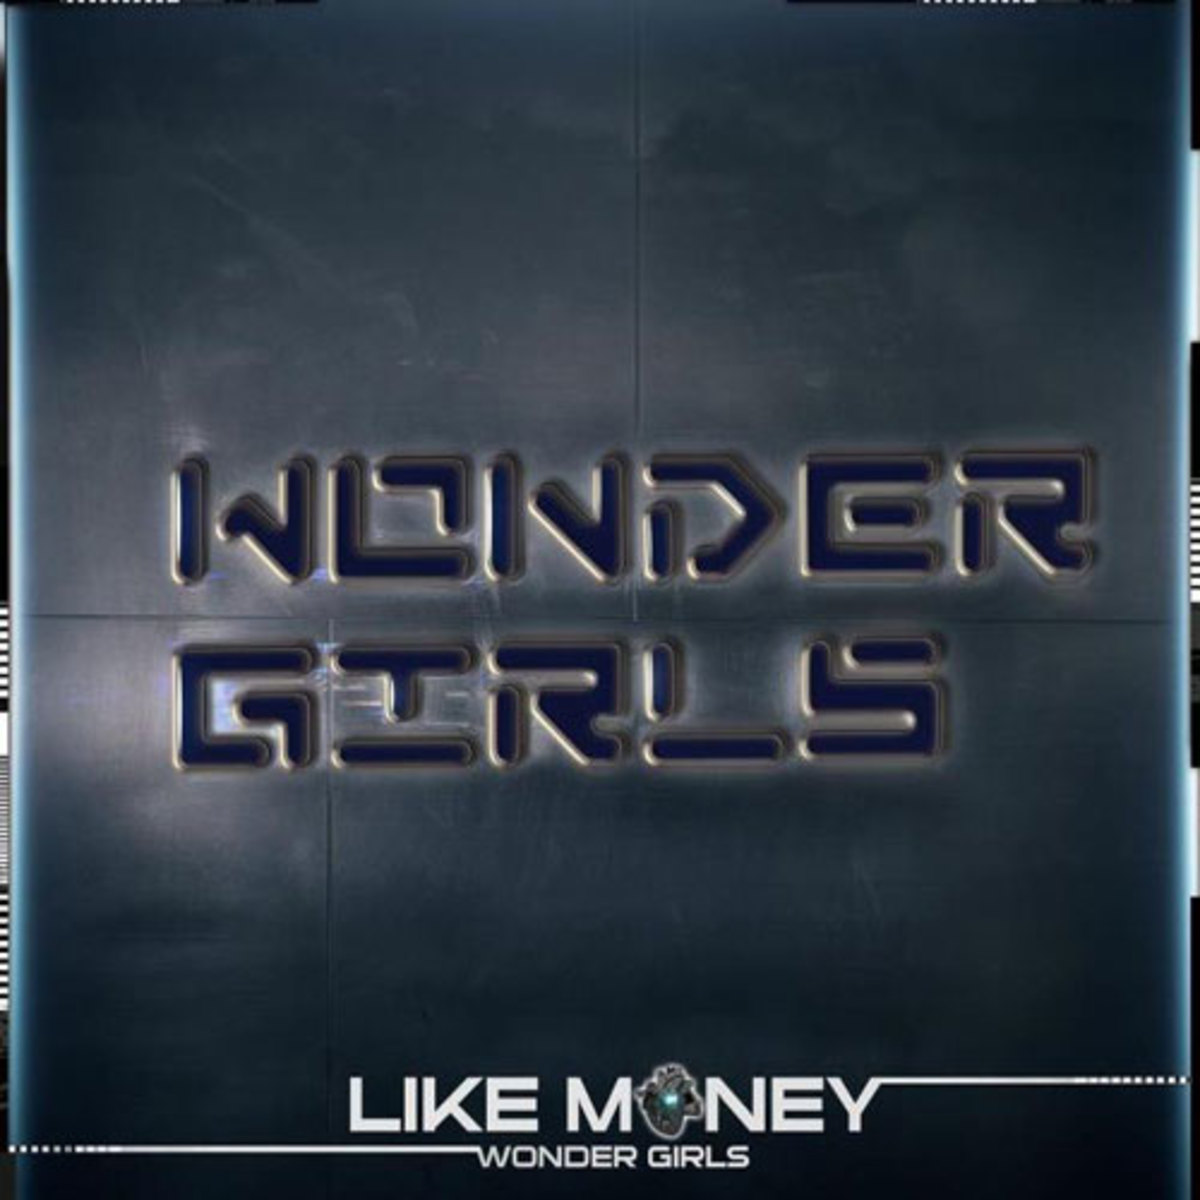 wondergirls-likemoney.jpg